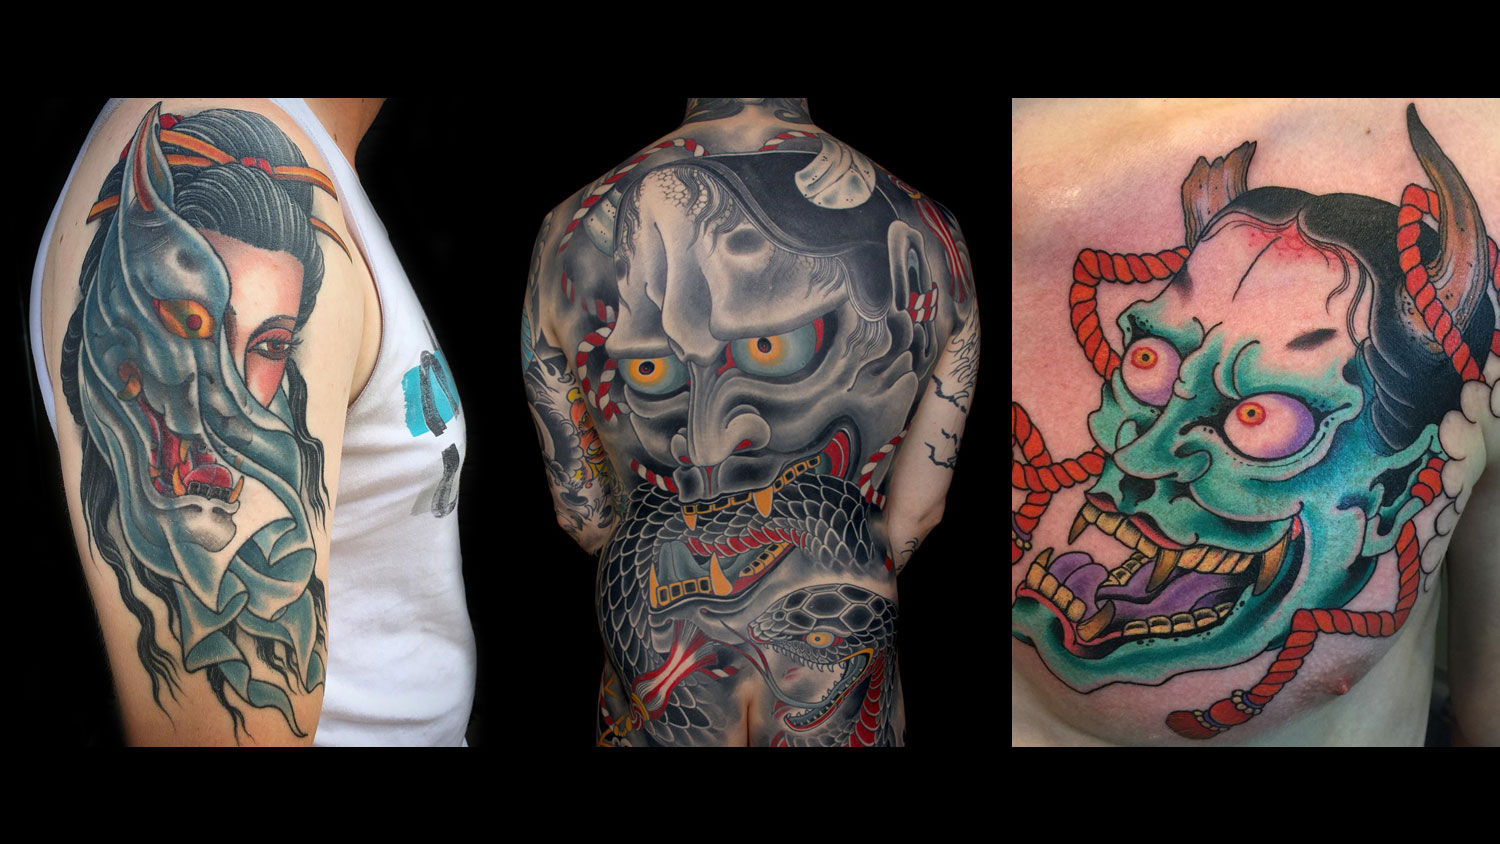 cd5be5af9 Tattoo Idea: 27 Japanese Hannya Tattoo Styles from Traditional to Modern